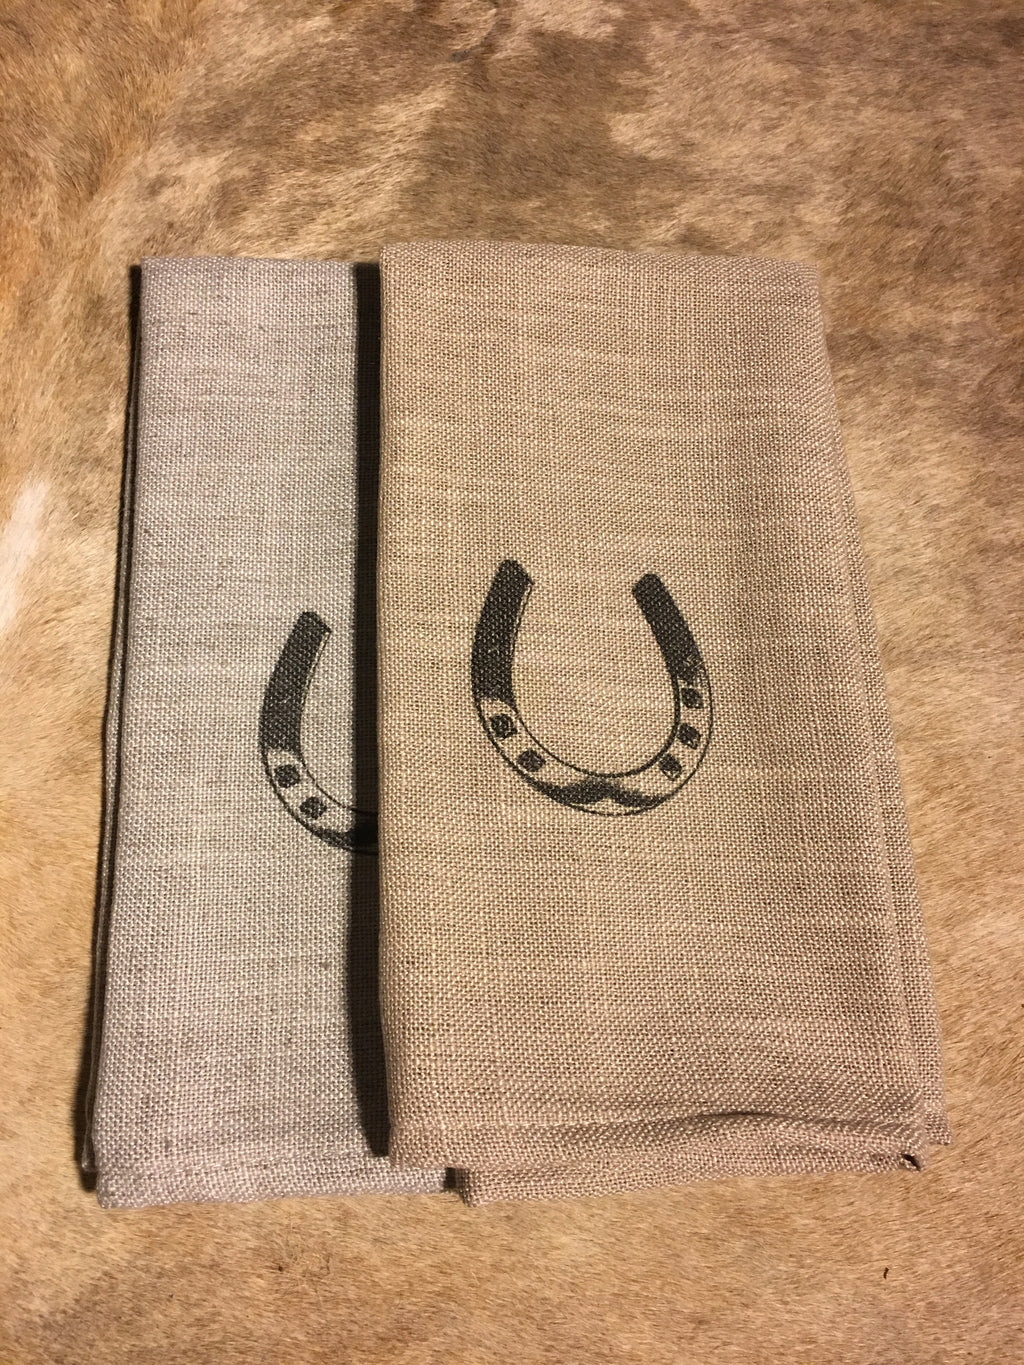 Horse Shoe Cafe Towels